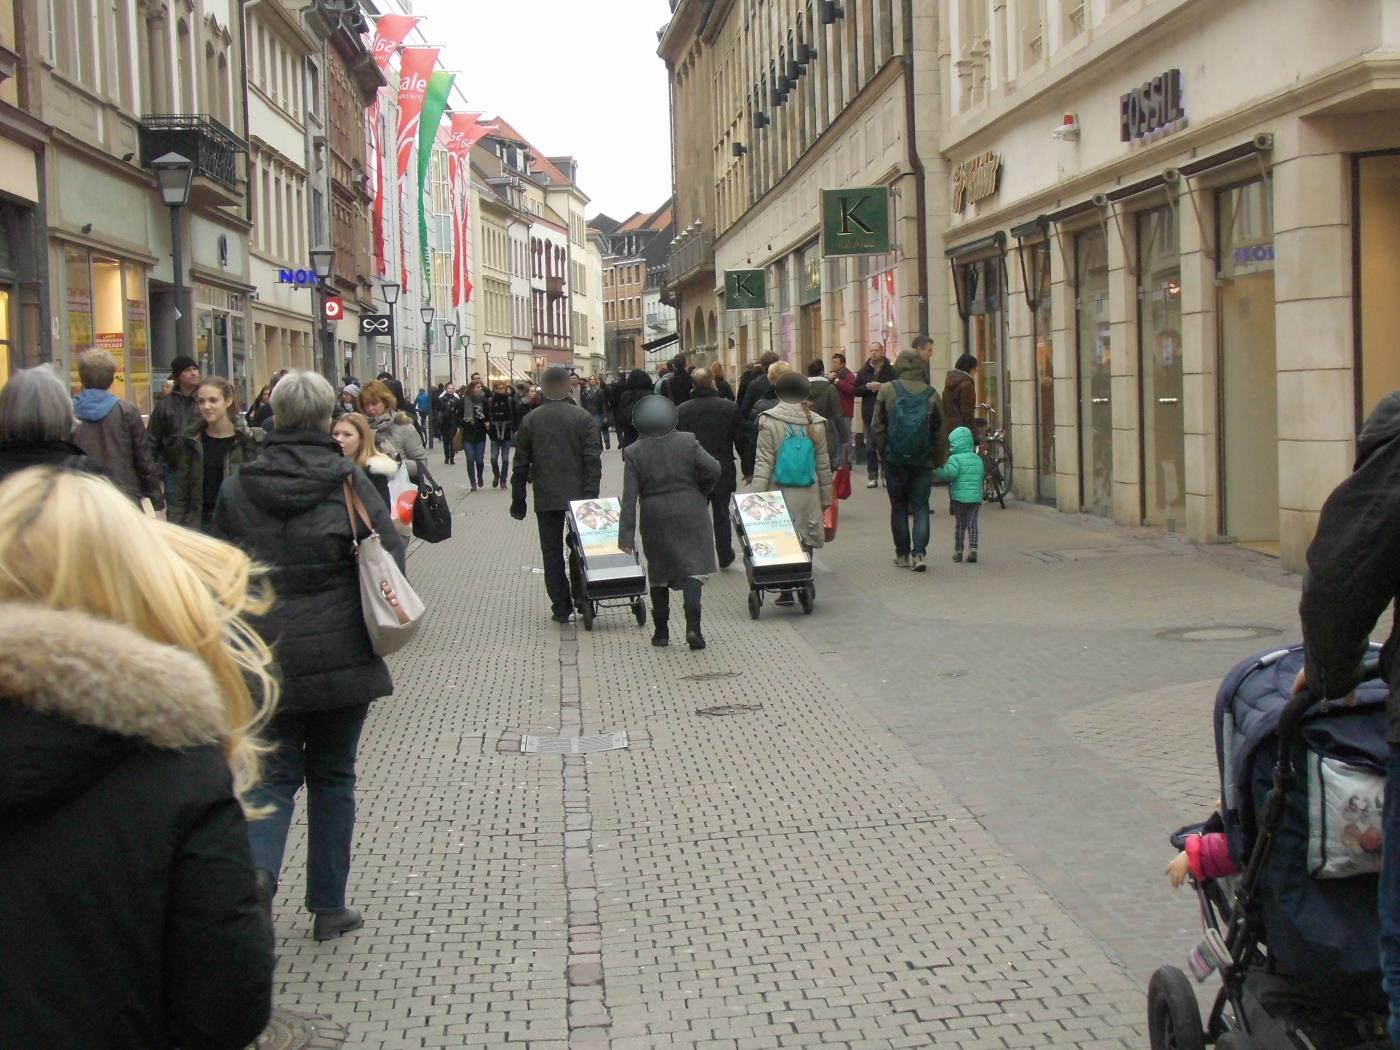 Heidelberg - Jehovah's Witnesses Fulfilling Their Duties